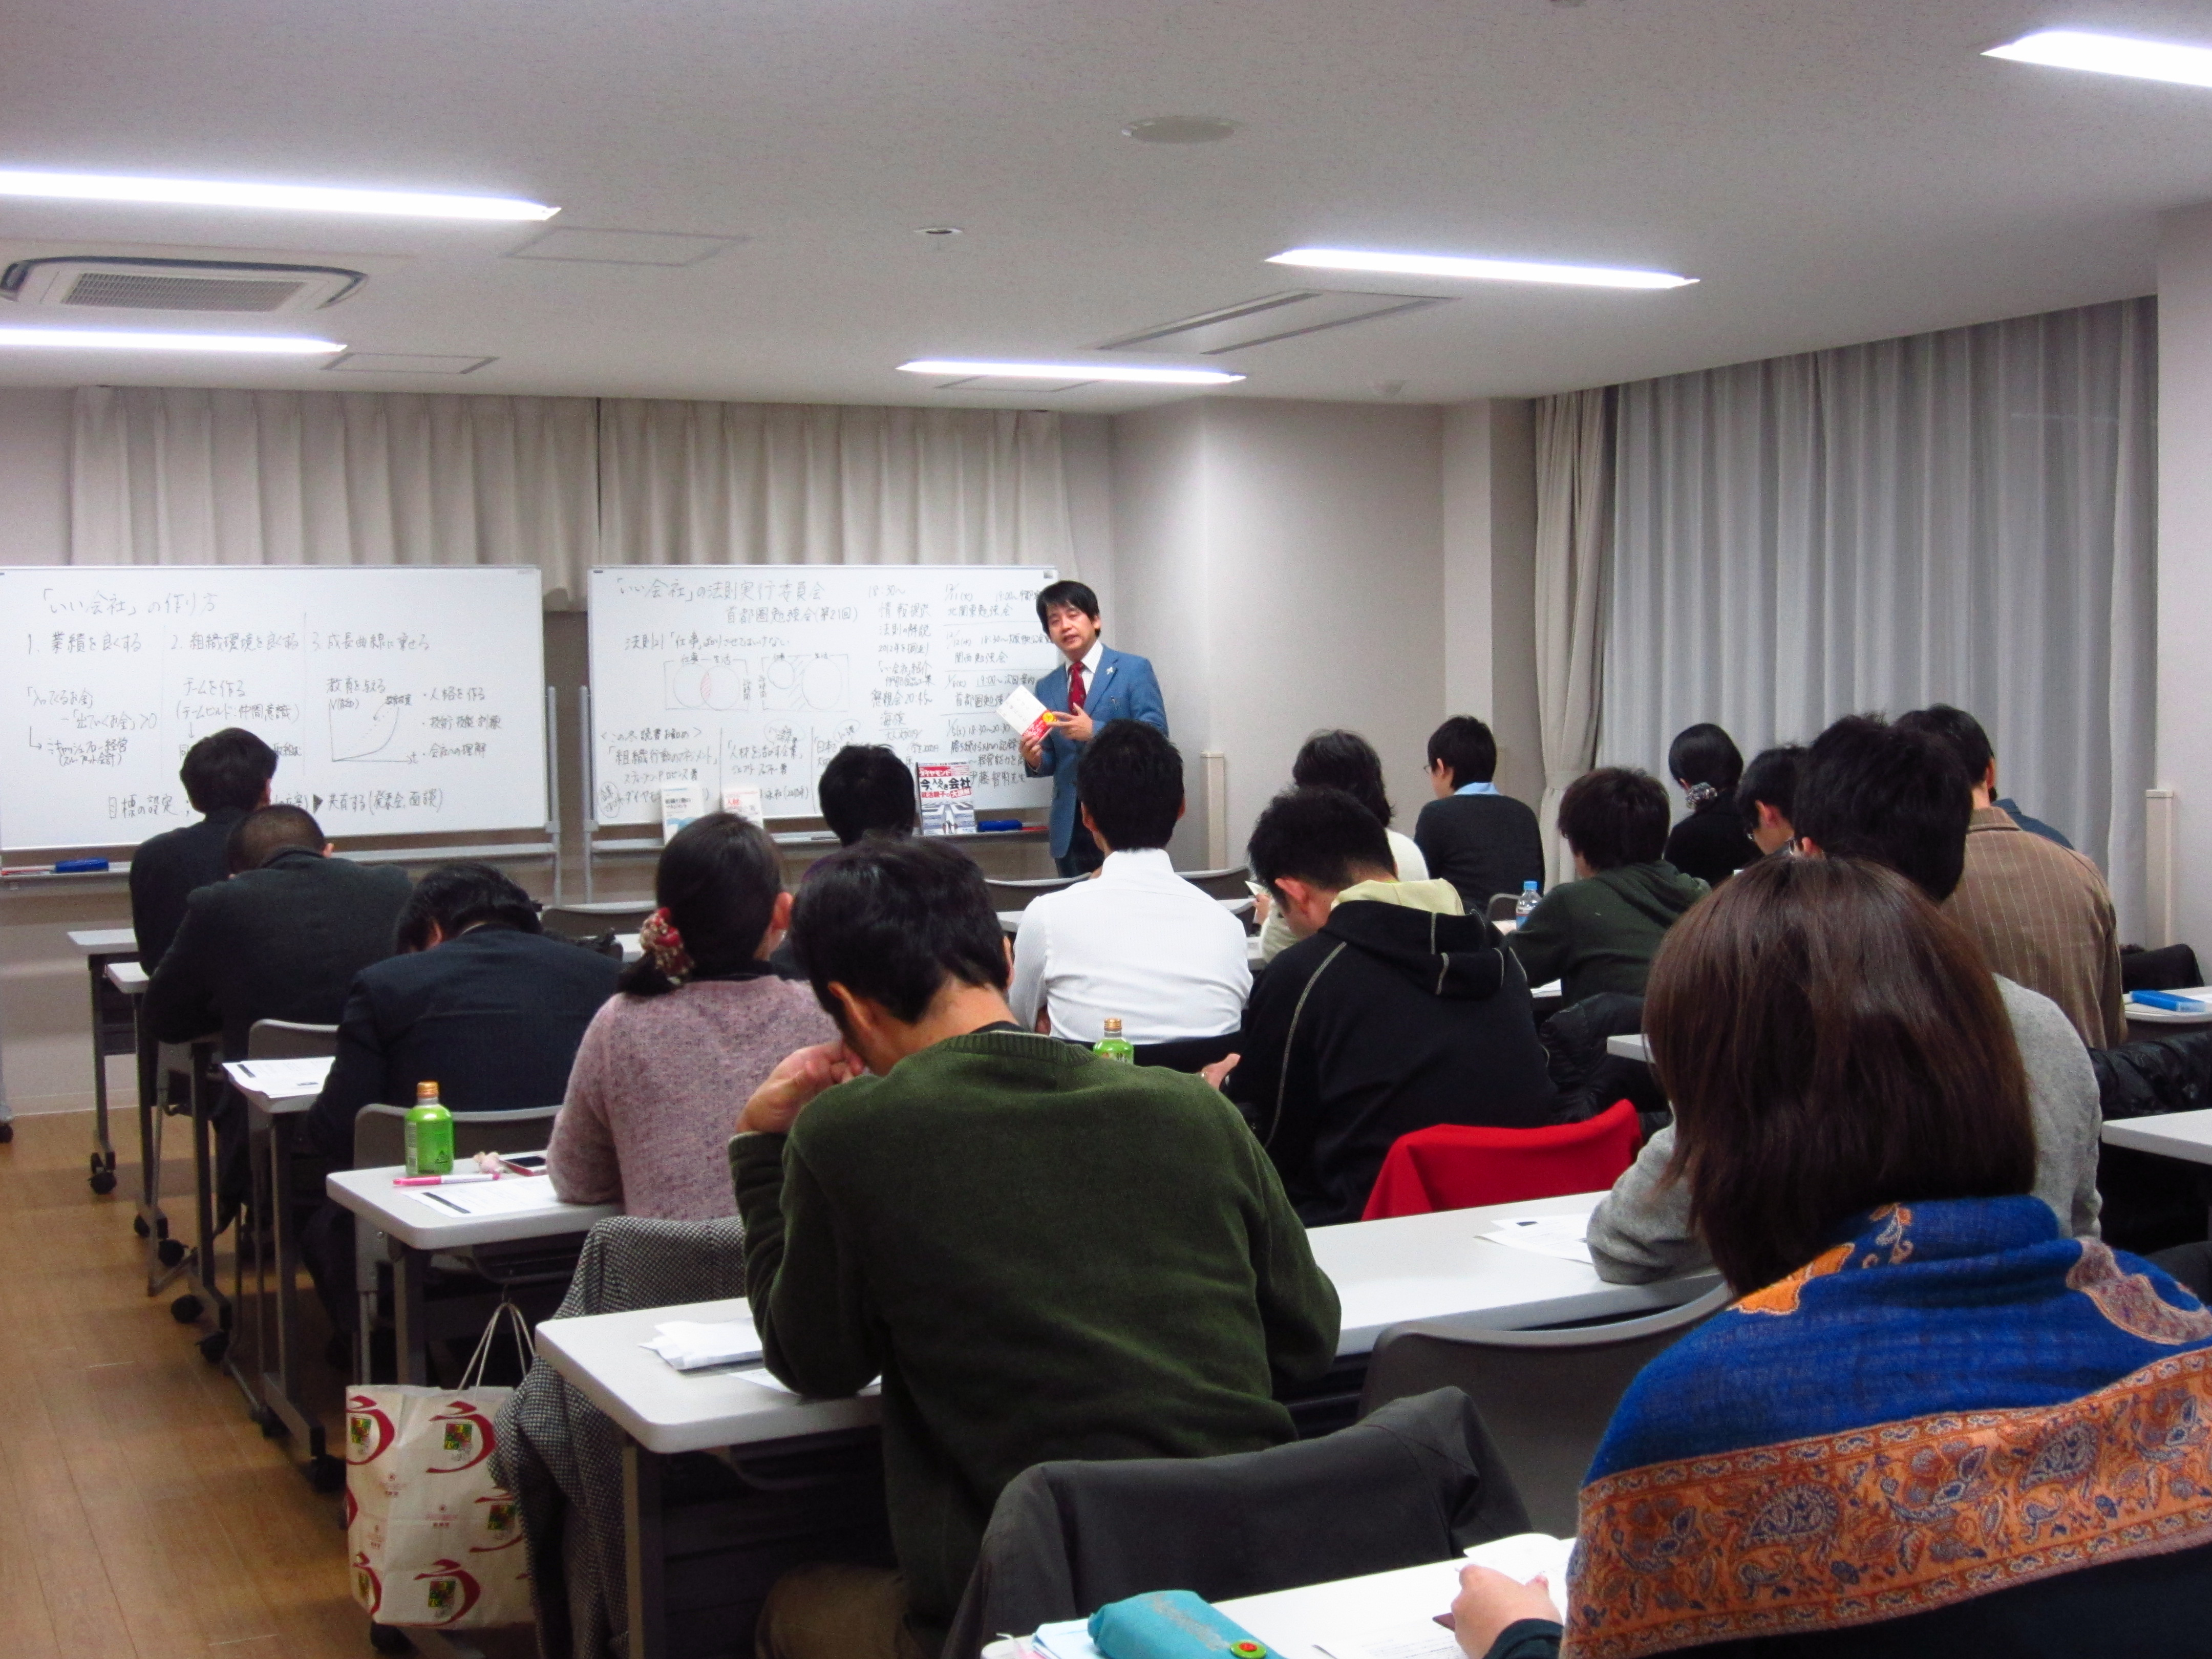 IMG 2084 - 2018年4月5日(木)第73回 いい会社の法則実行委員会 首都圏勉強会